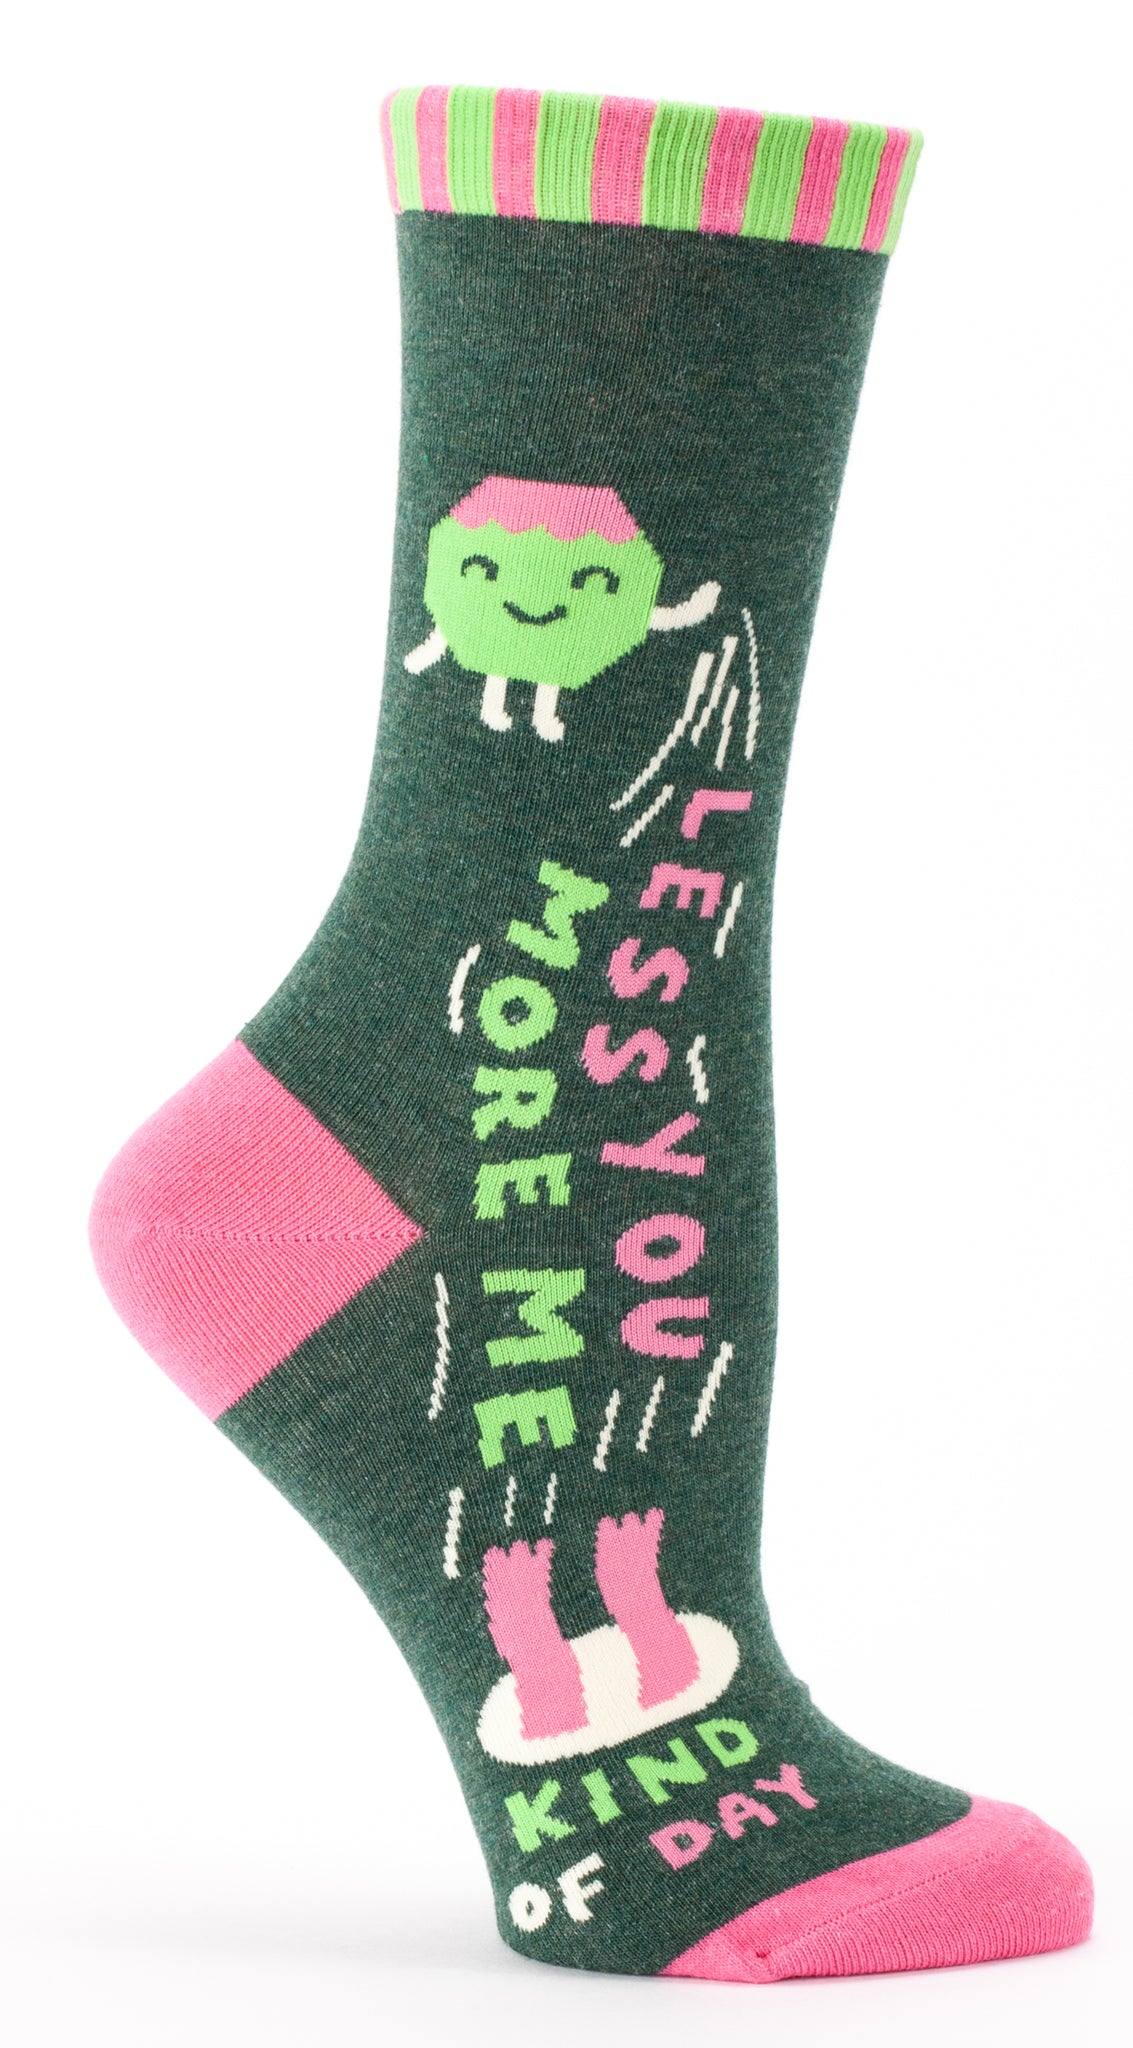 Less You More Me Crew Socks